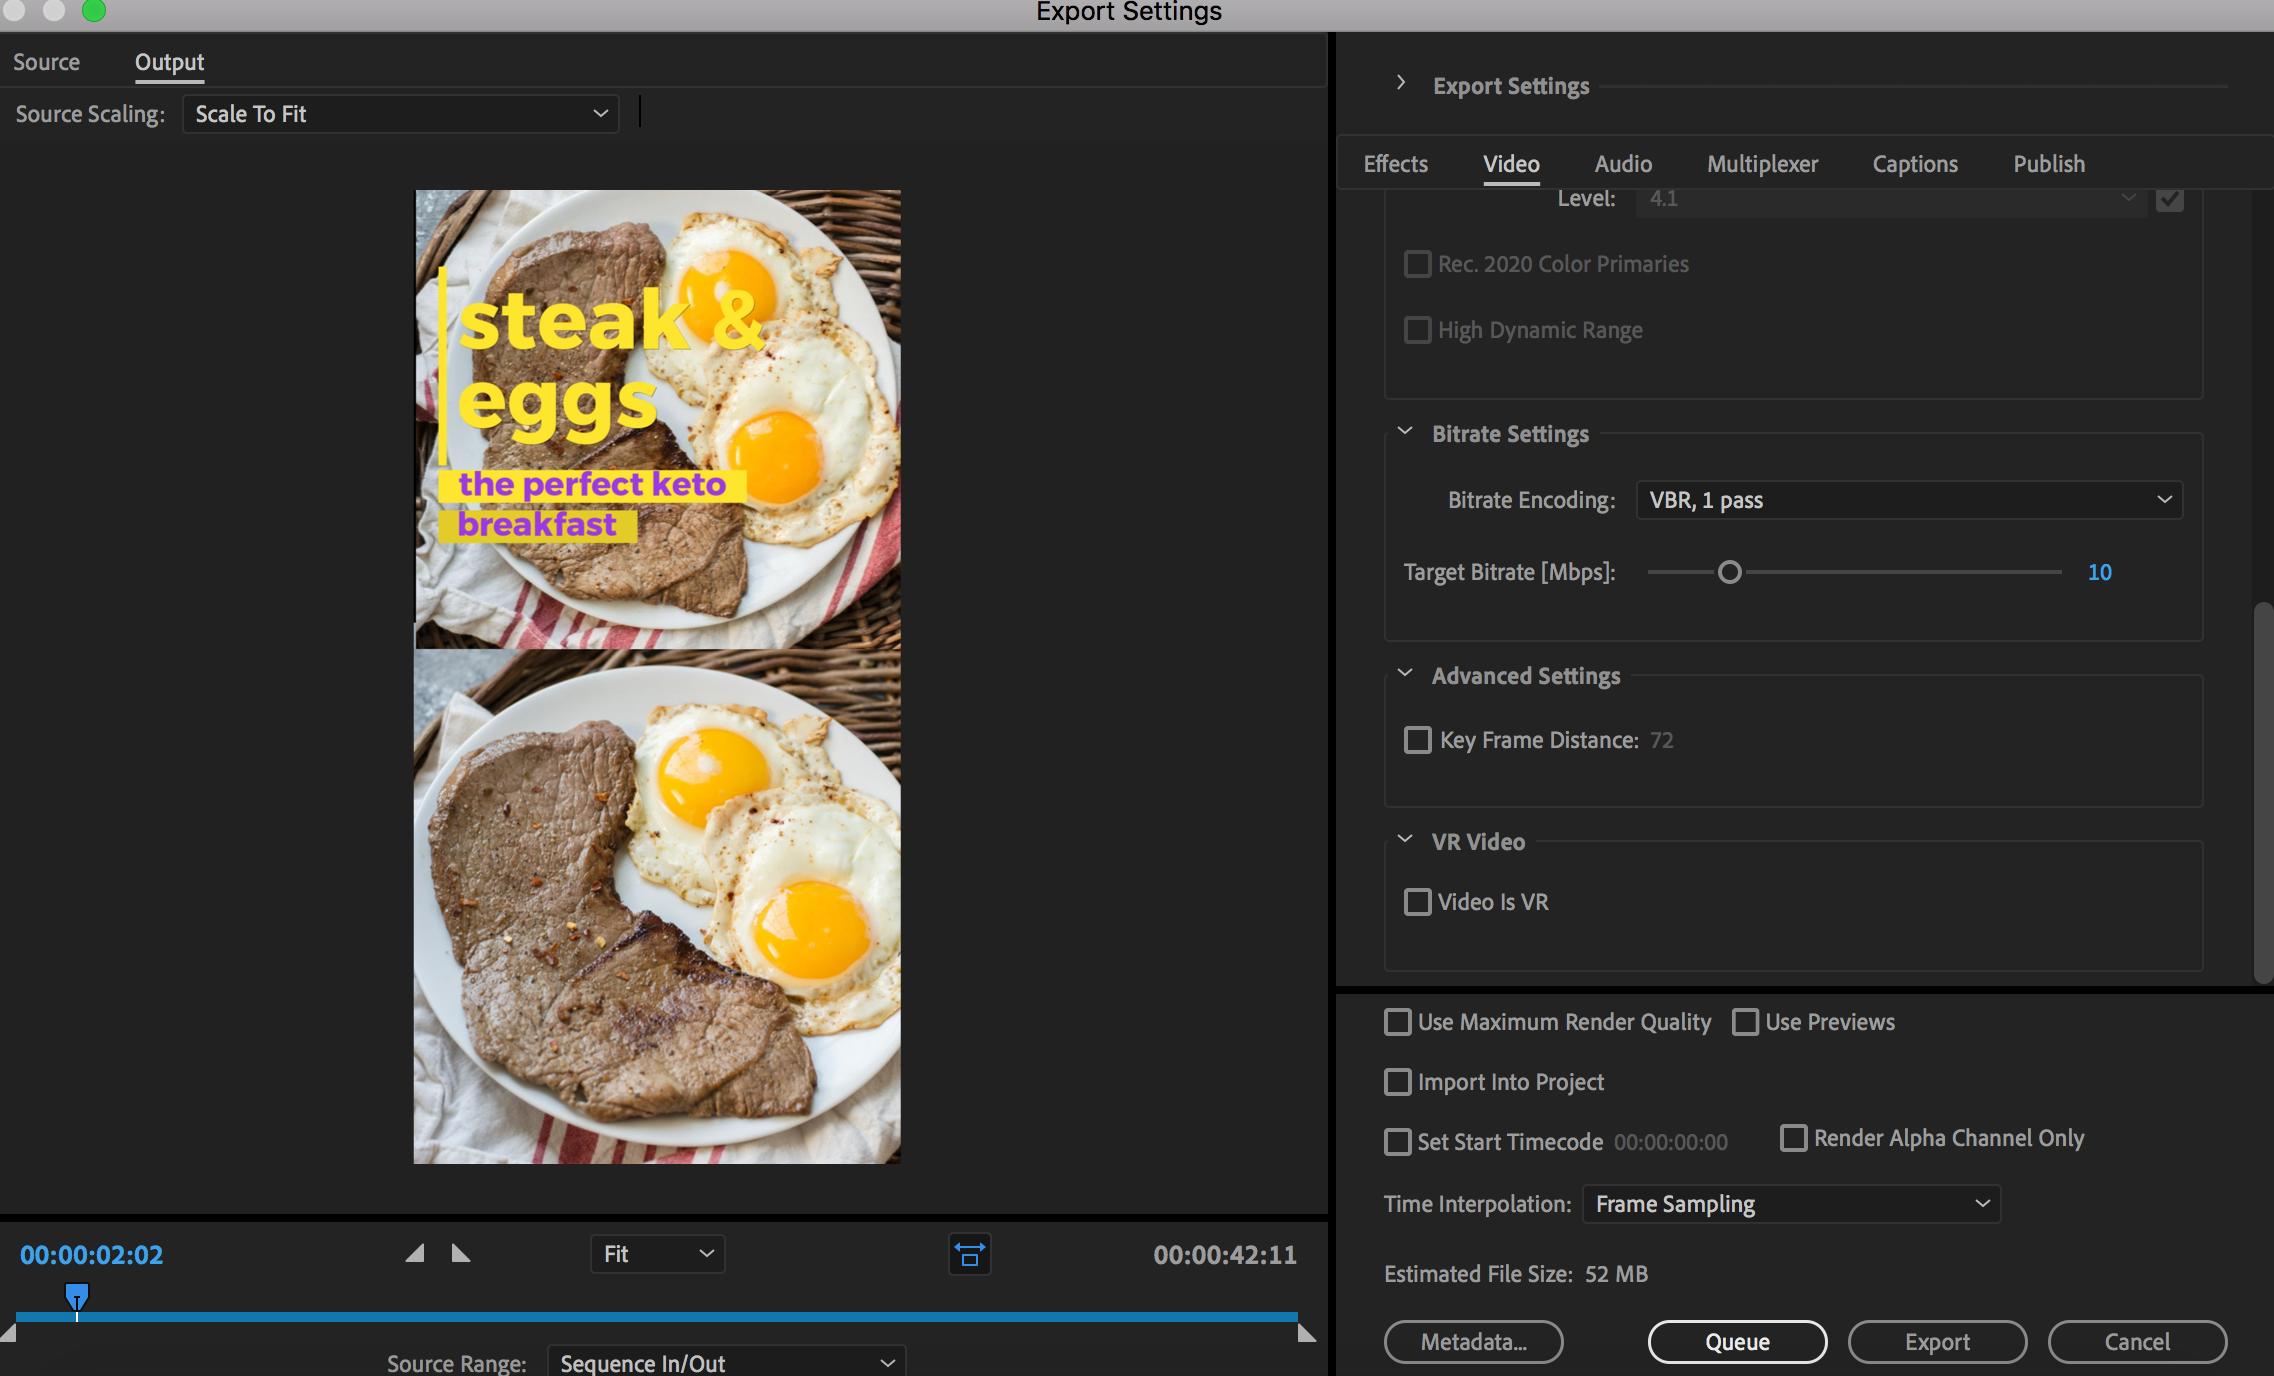 You can also add text to your image by clicking the text box and placing it anywhere within your template.